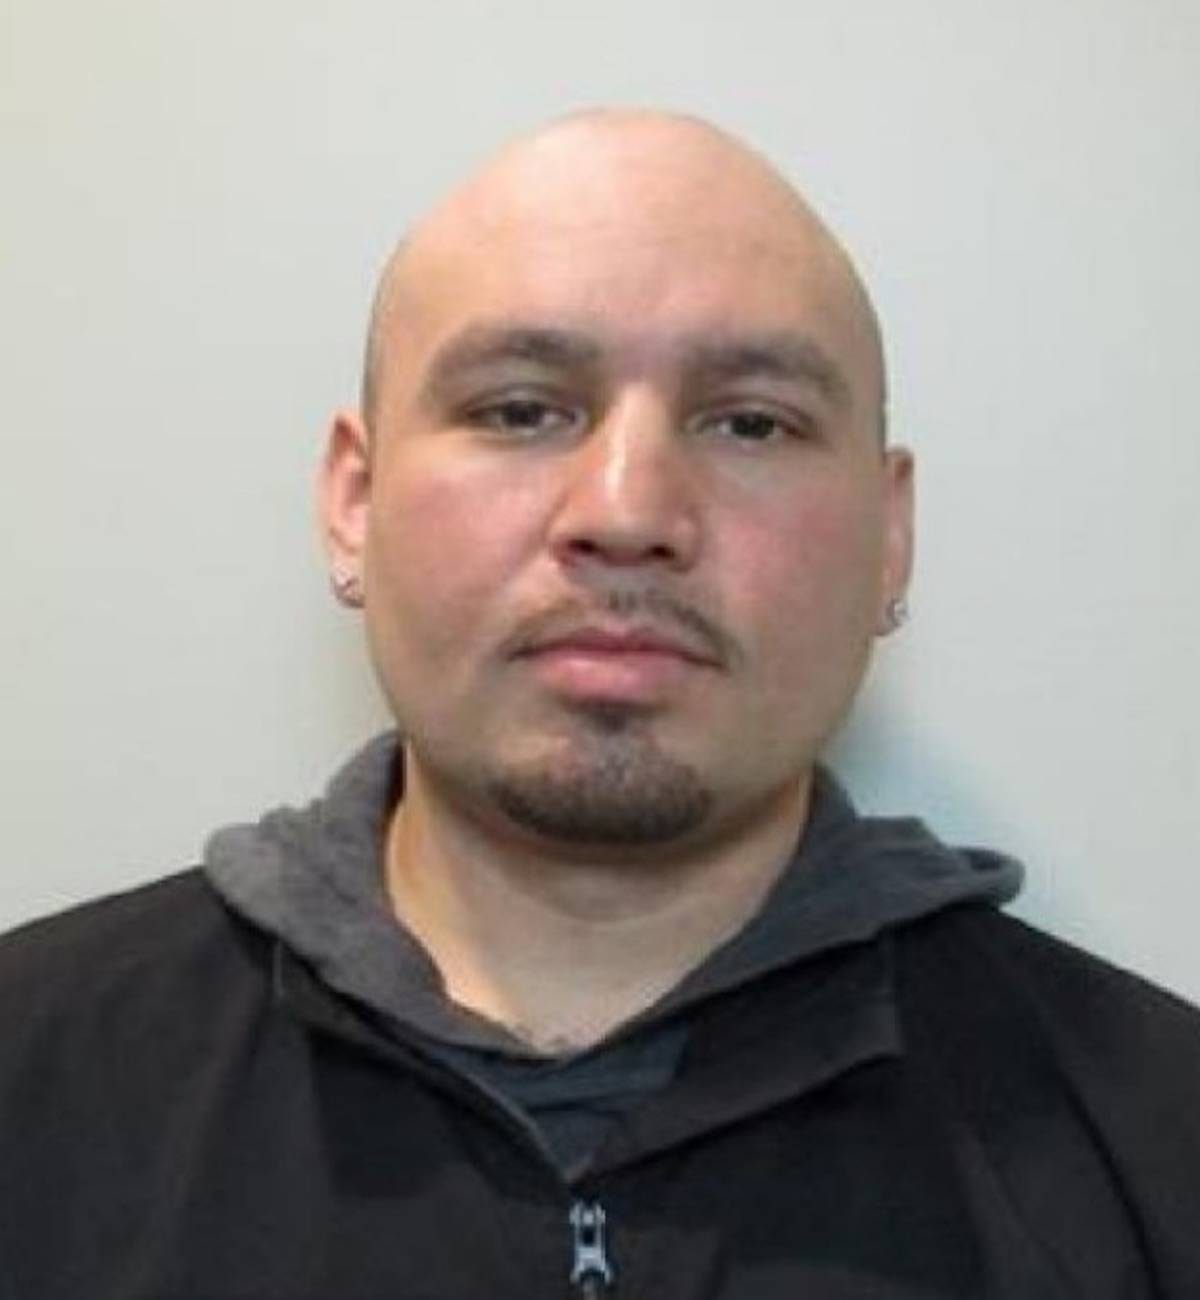 """Name: WILLIAMS, Emile Age: 33 Height: 5'7"""" ft Weight: 196 lbs Hair: Bald Eyes: Brown Wanted: Unlawfully at Large Warrant in effect: June 28, 2021 Parole Jurisdiction: Vancouver, BC"""